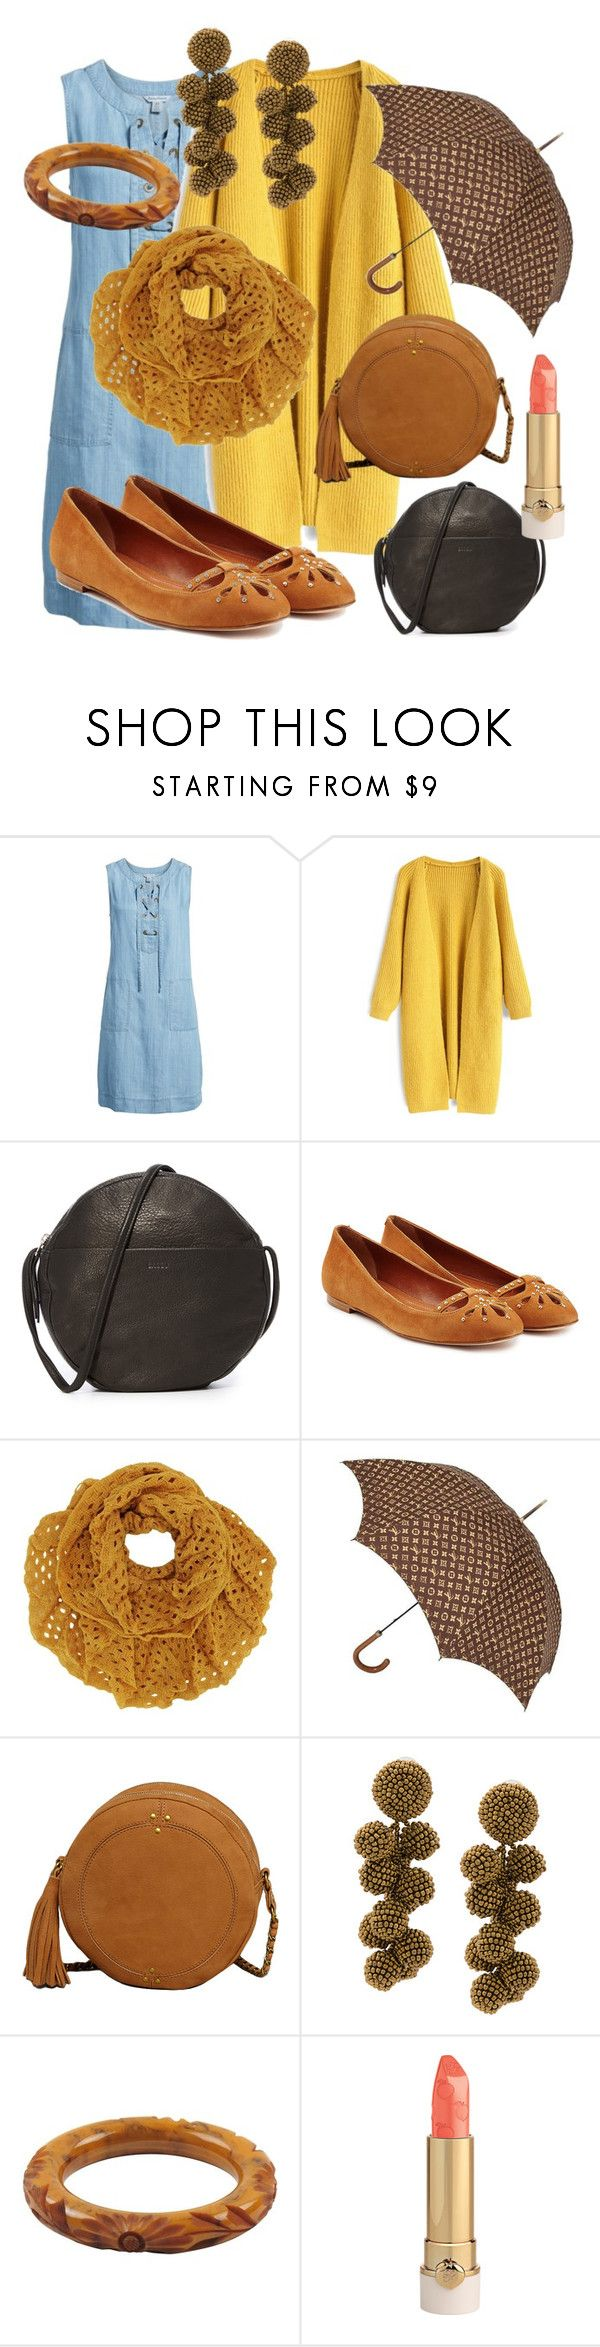 """Rainy summer outfit"" by tinakriss ❤ liked on Polyvore featuring Tommy Bahama, Chicwish, BAGGU, Vanessa Bruno, Louis Vuitton, Jérôme Dreyfuss, Sachin + Babi and statementbags"